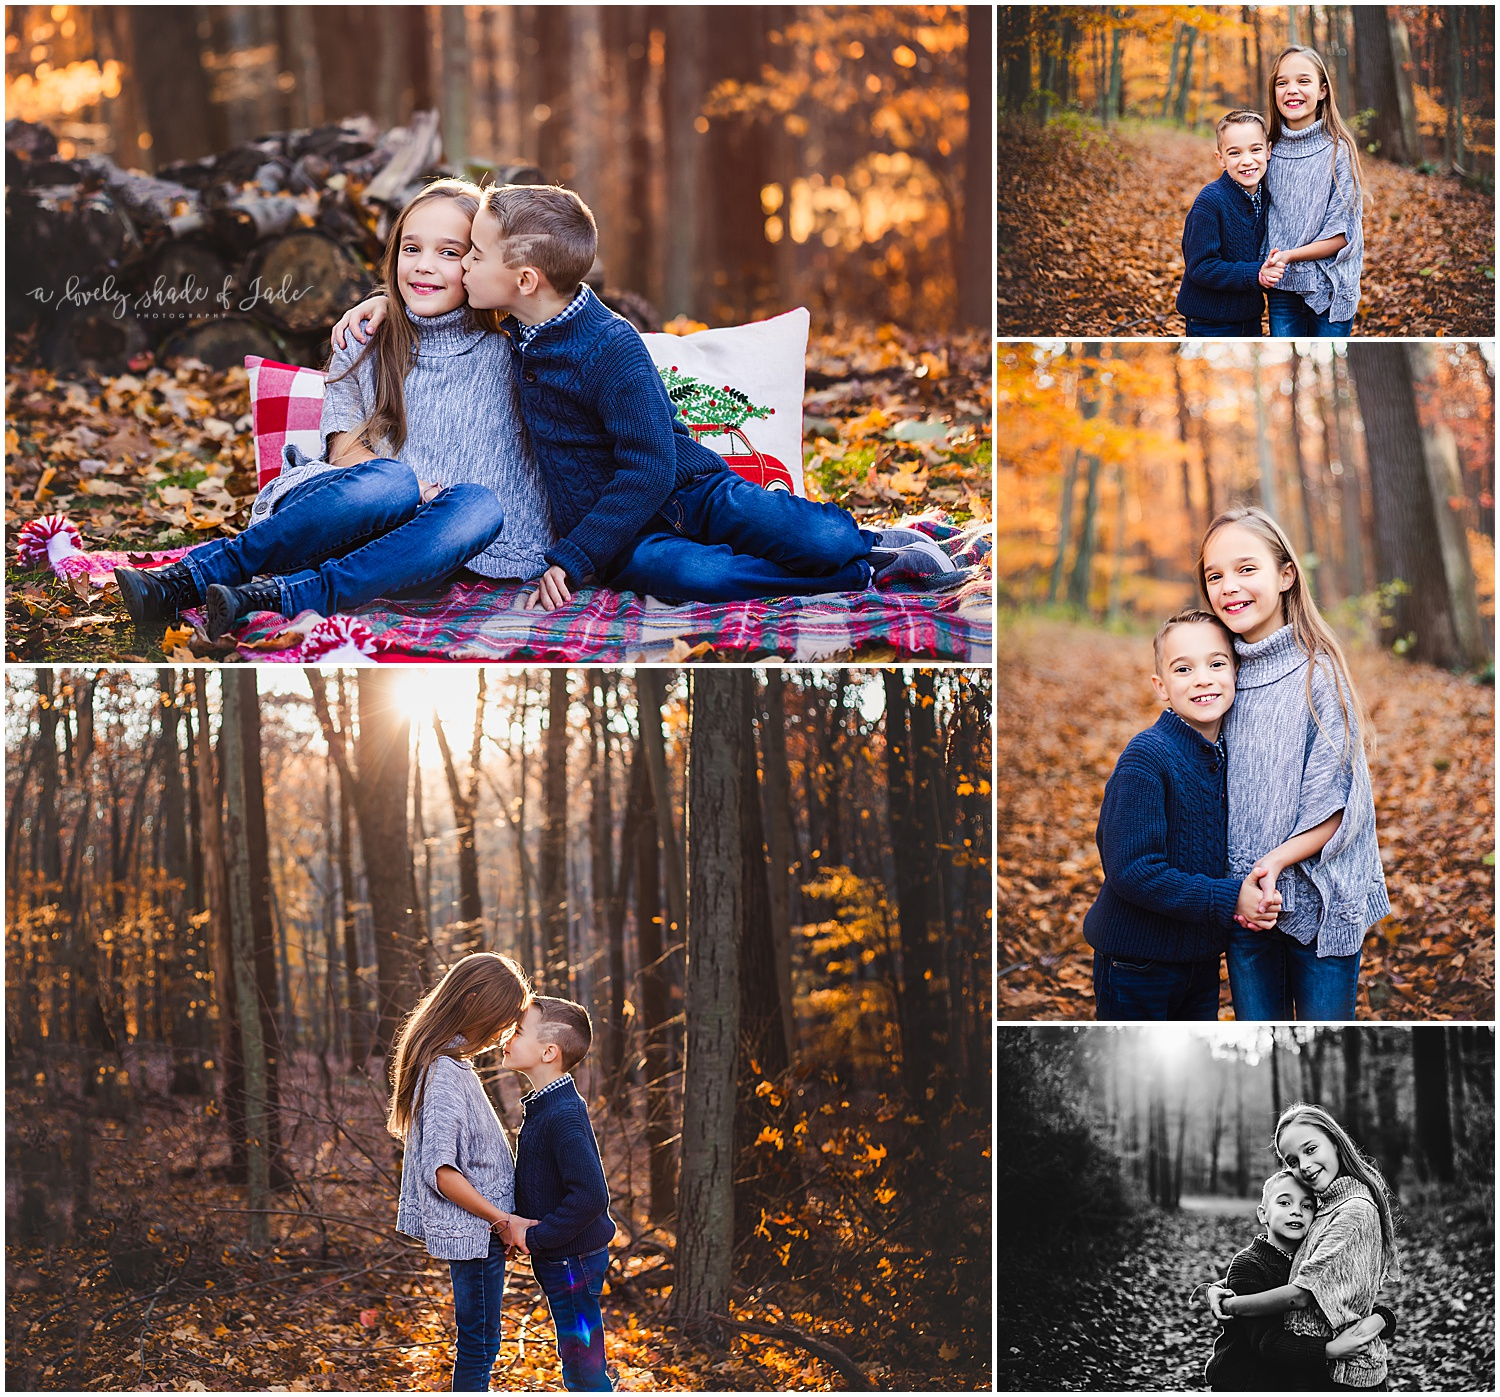 Fall_Sibling_Session_Morristown_NJ_Photographer_0006.jpg